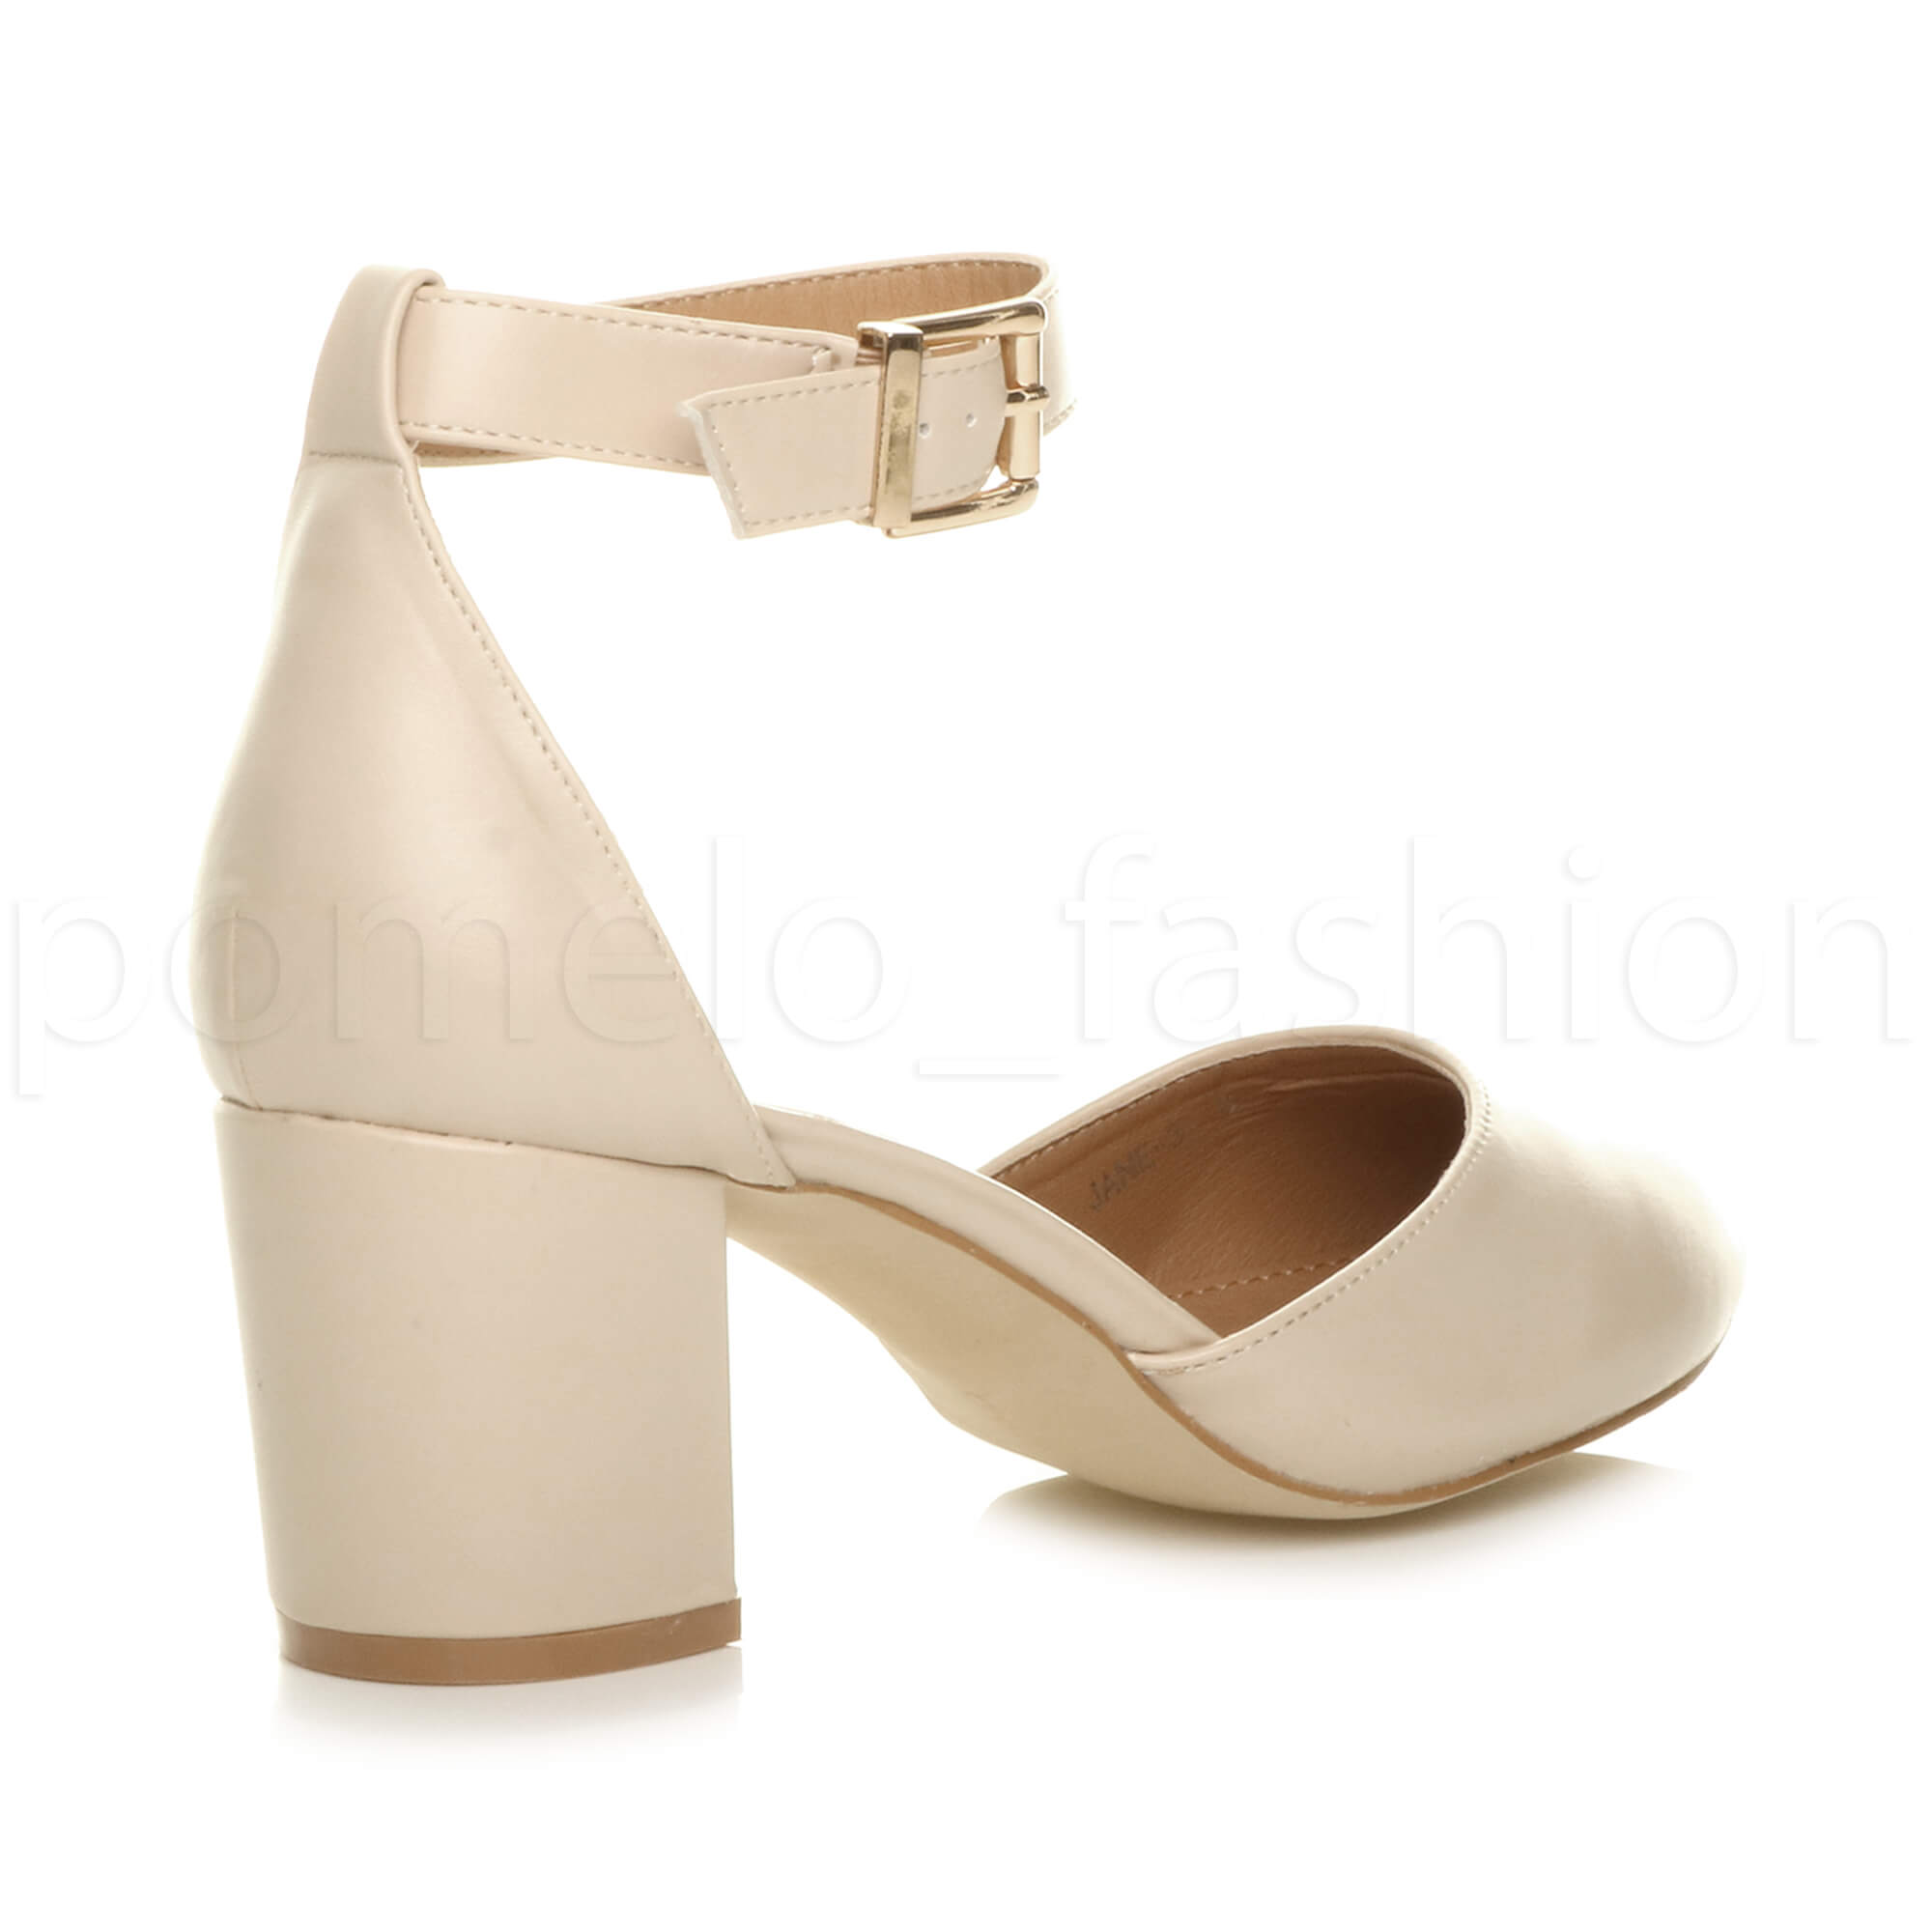 e87af7bd5 WOMENS LADIES BLOCK LOW MID HEEL ANKLE STRAP PROM EVENING SANDALS ...